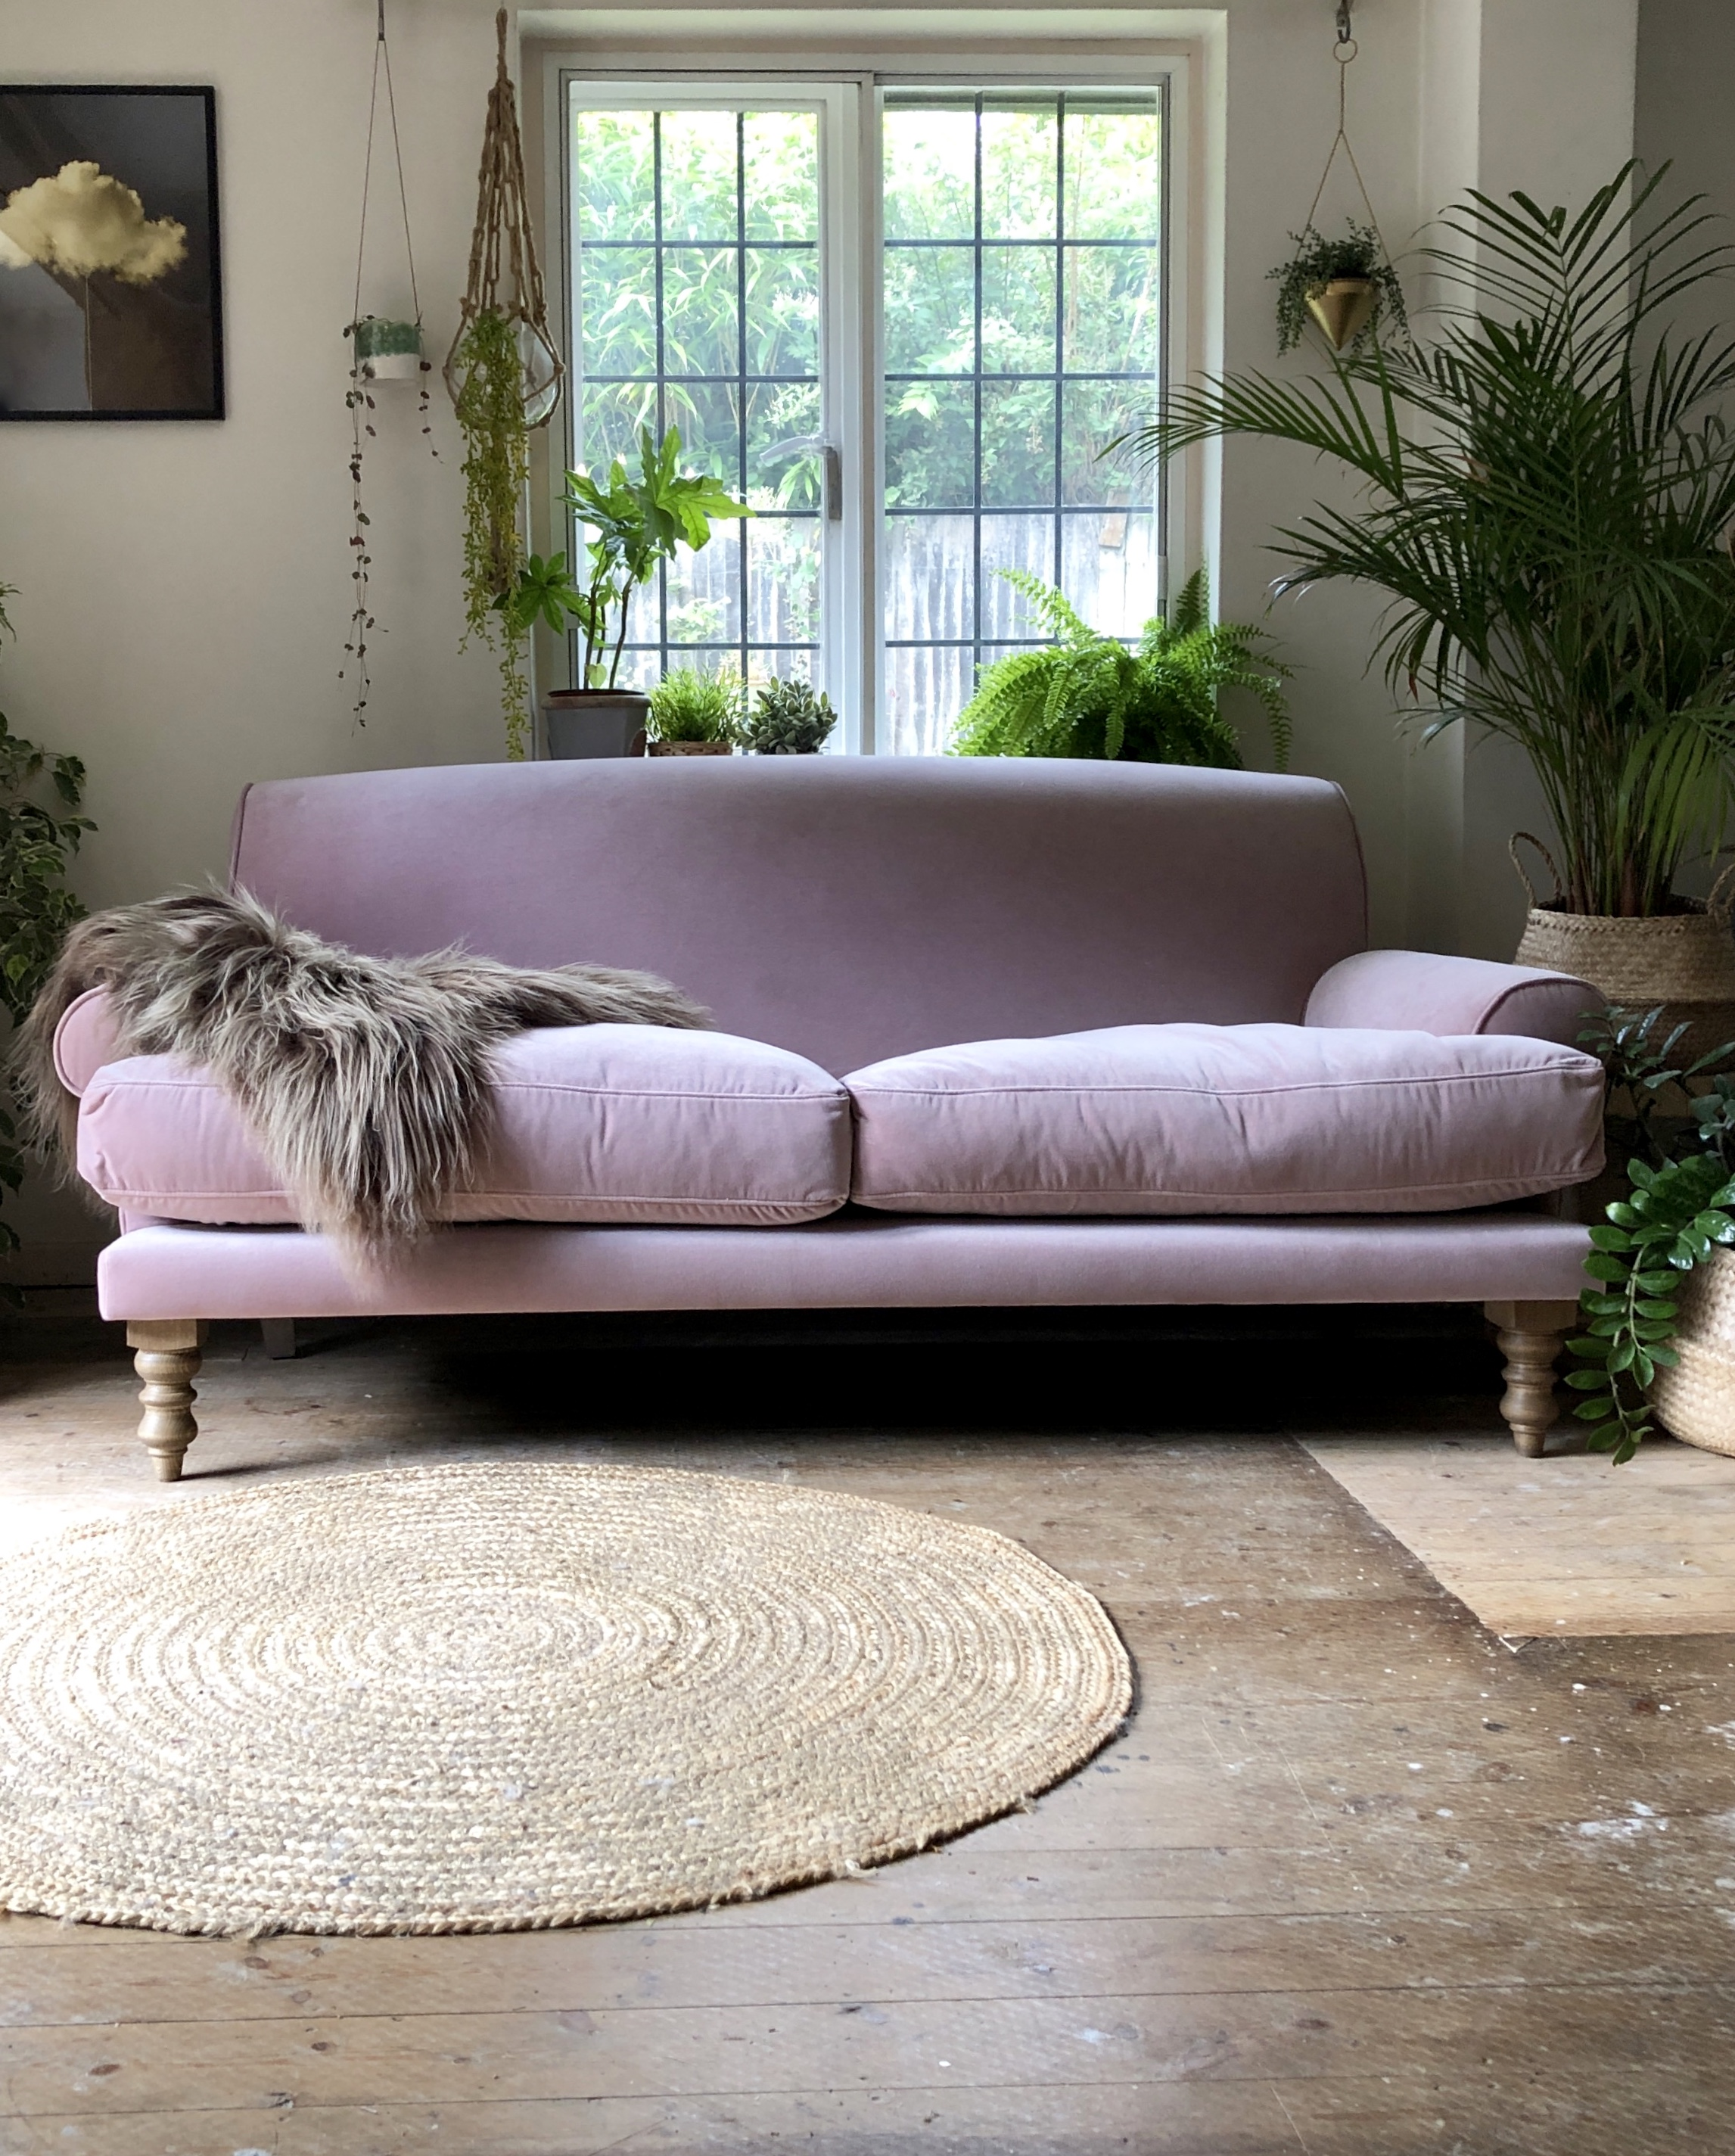 I do love these rustic floorboards next to the smooth pink velvet….